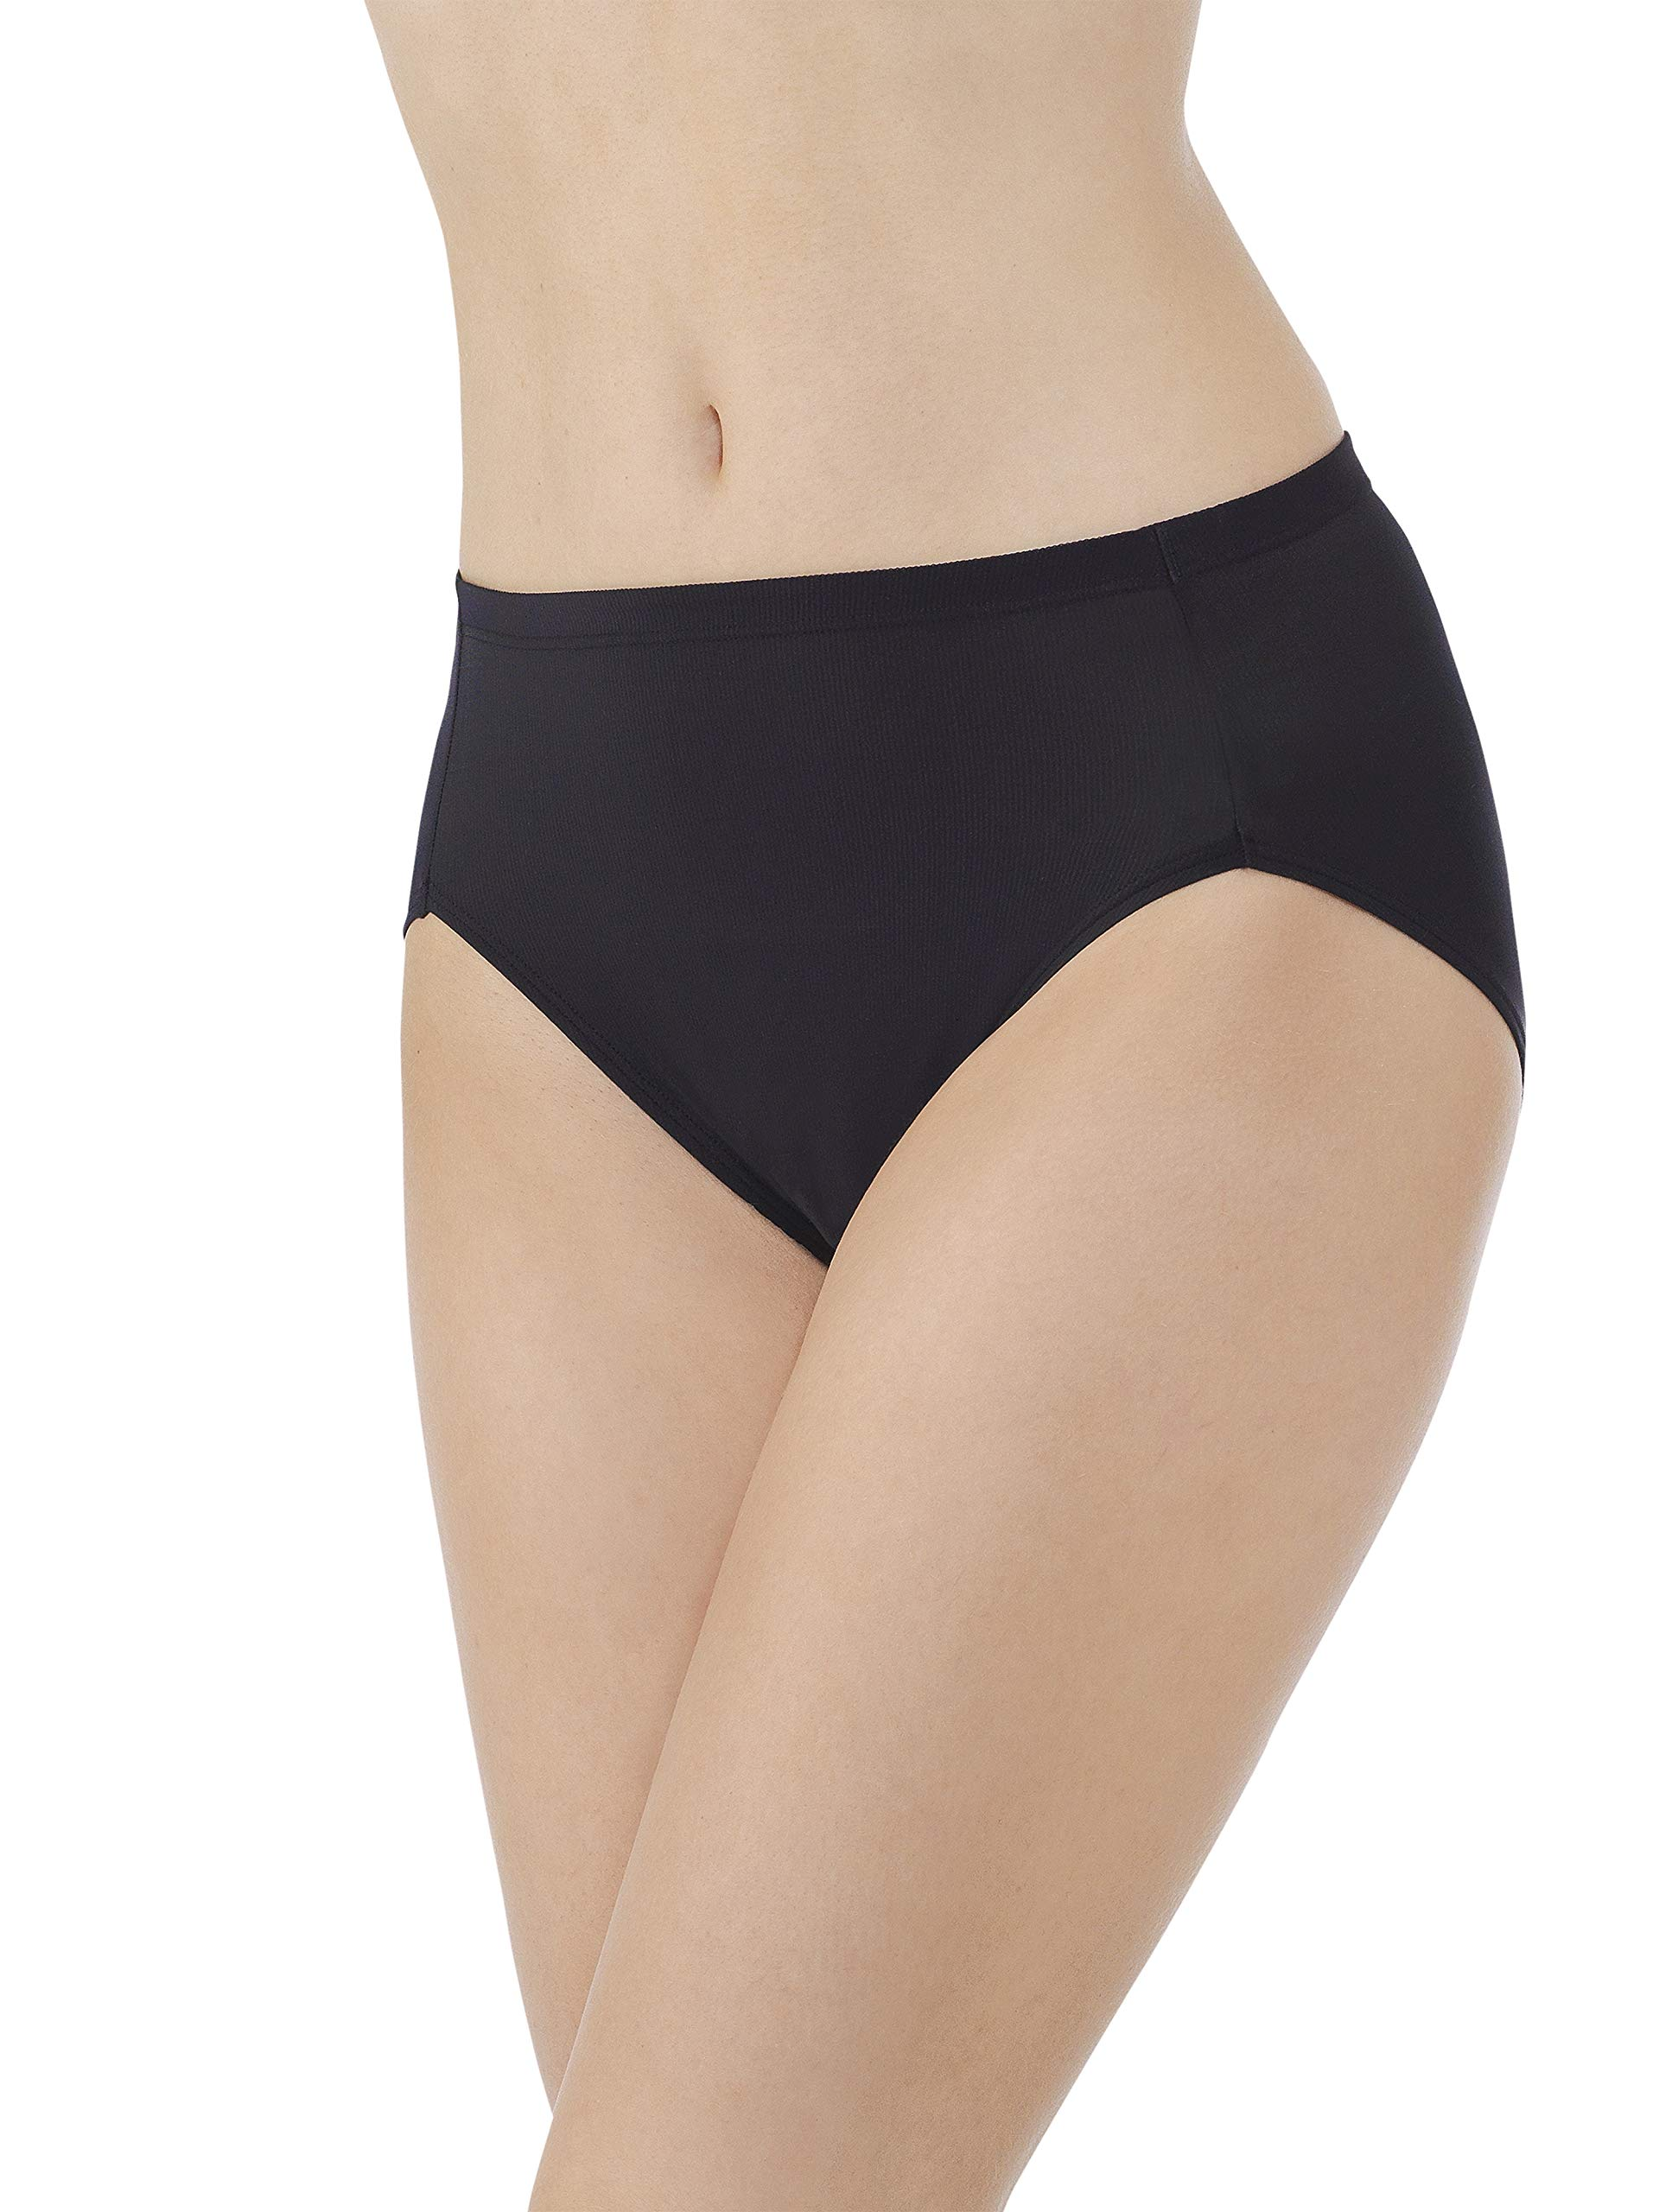 Vanity Fair Women's Cooling Touch Hi Cut Panty 13124, Midnight Black, X-Large/8